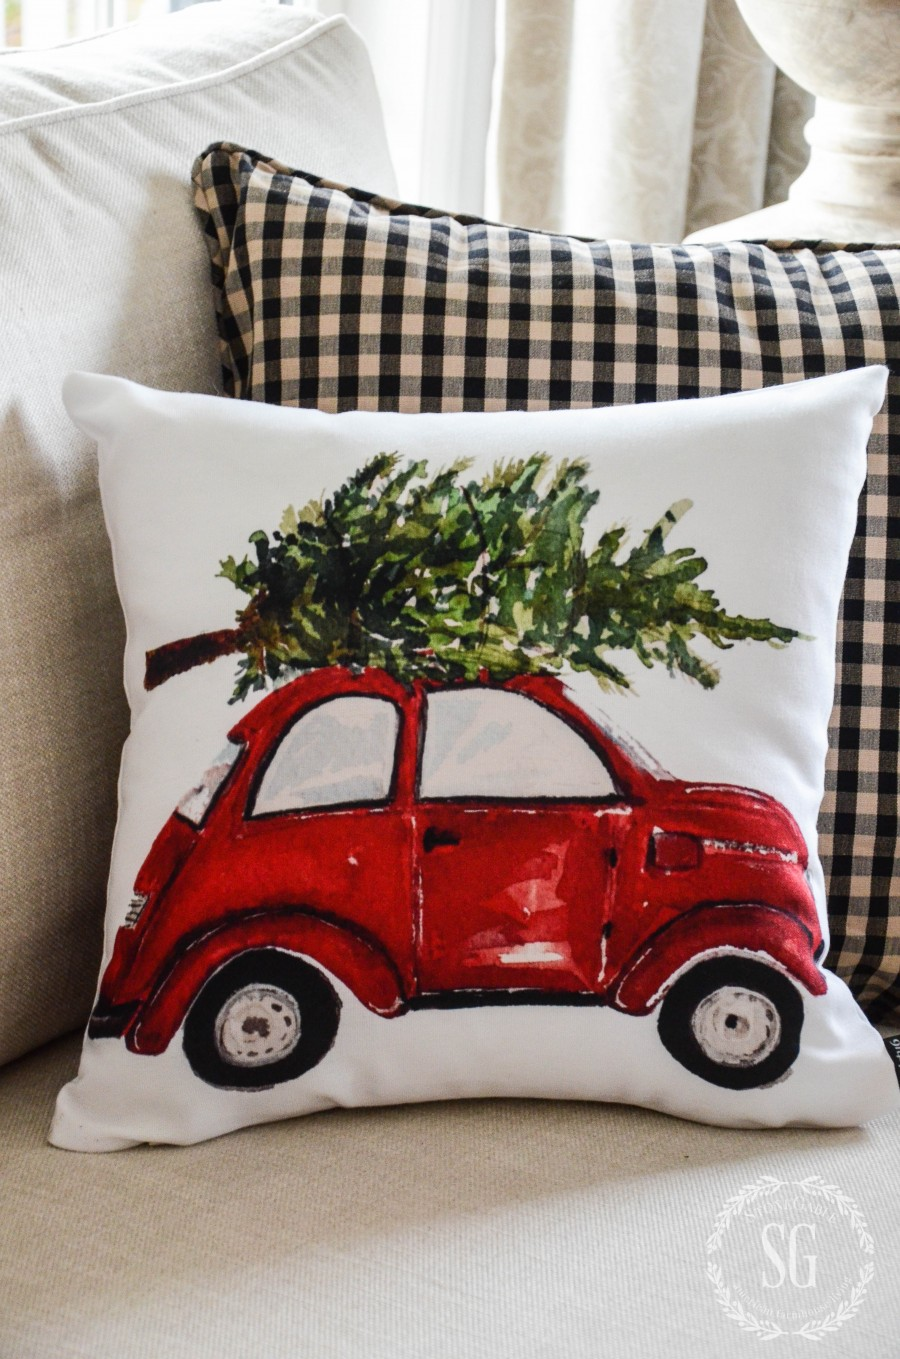 CHRISTMAS PILLOW LOVE. Decorate your home with festive Christmas Pillows. Here&#39